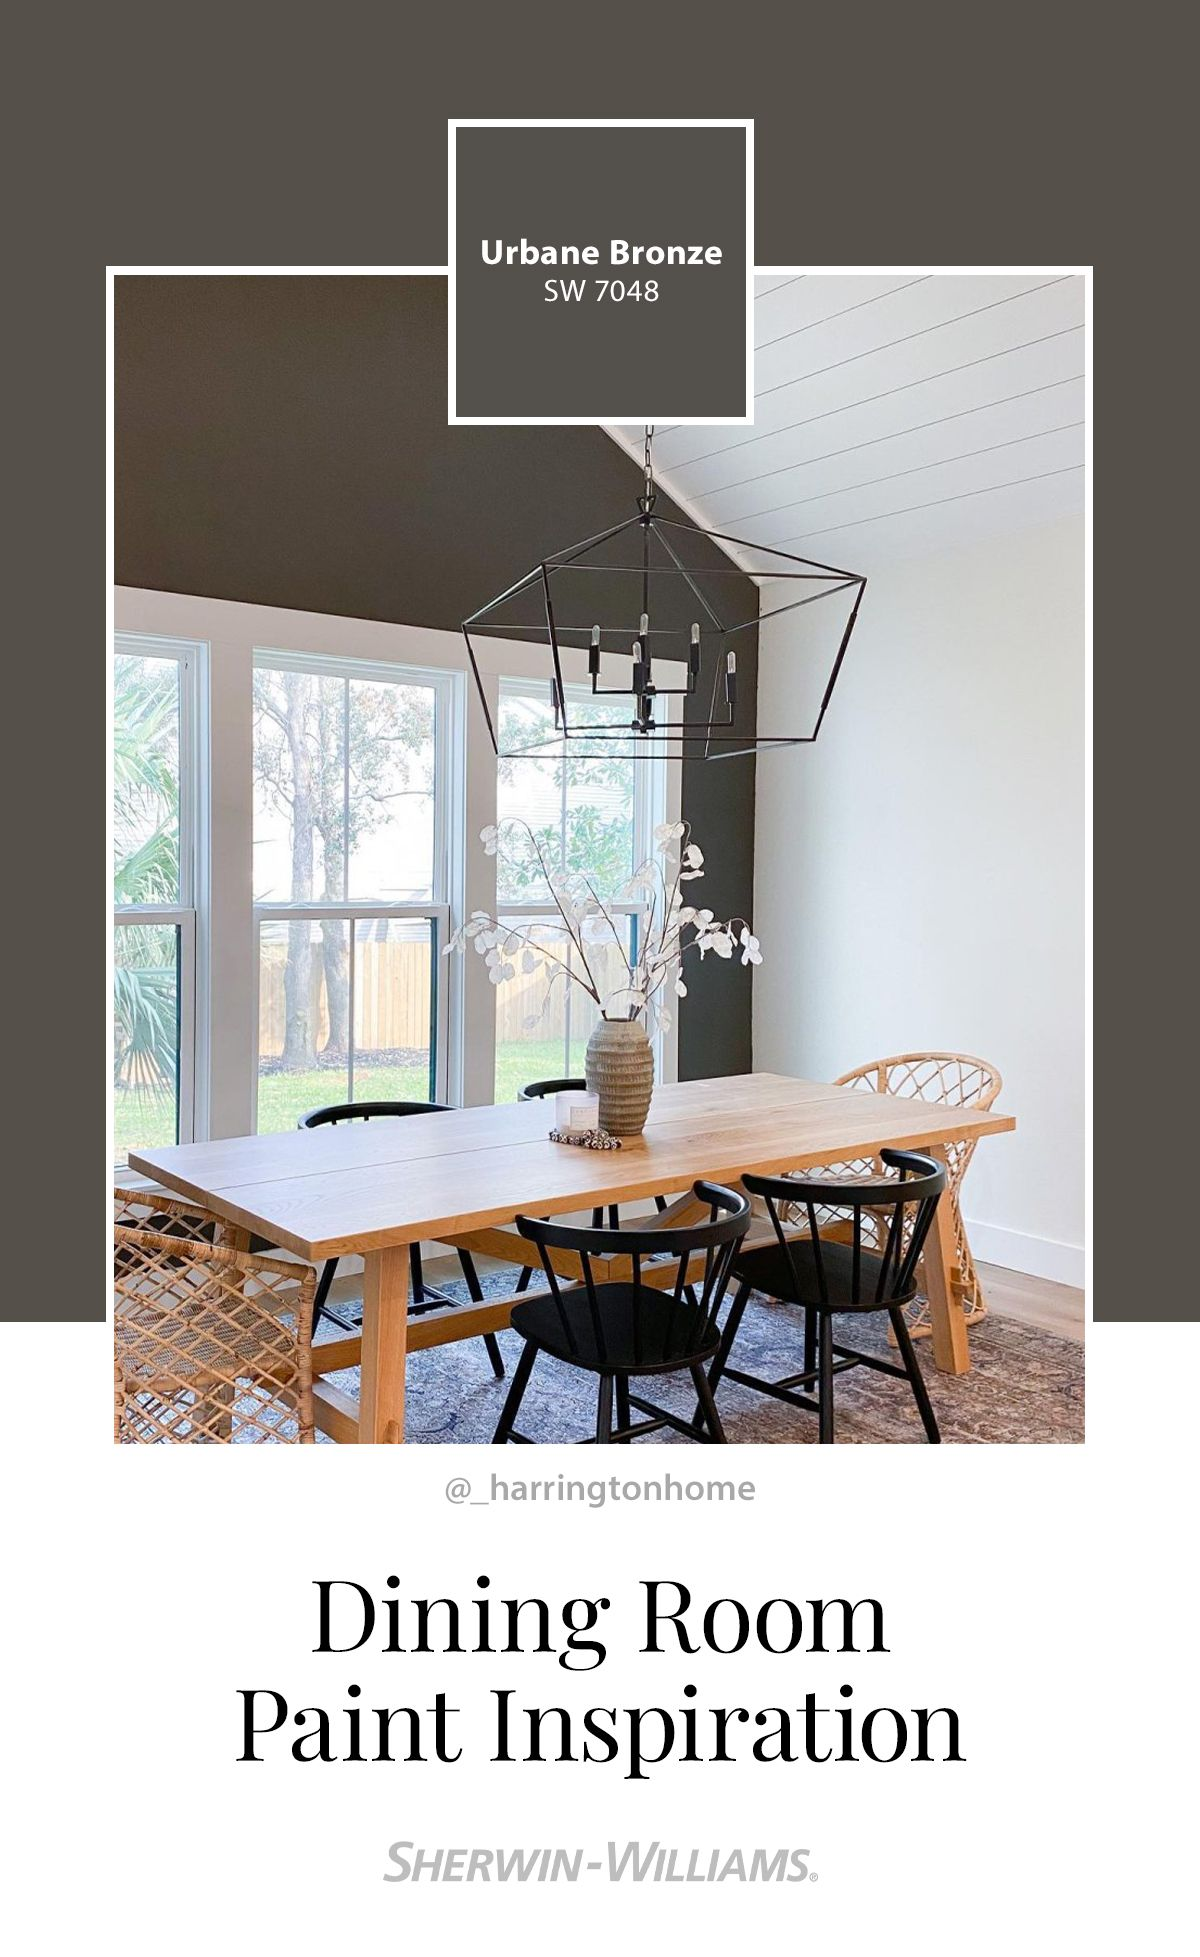 Paint Color Inspiration For Dining Rooms In 2021 Dining Room Paint Inspiration Dining Room Paint Dining Room Paint Color Inspiration